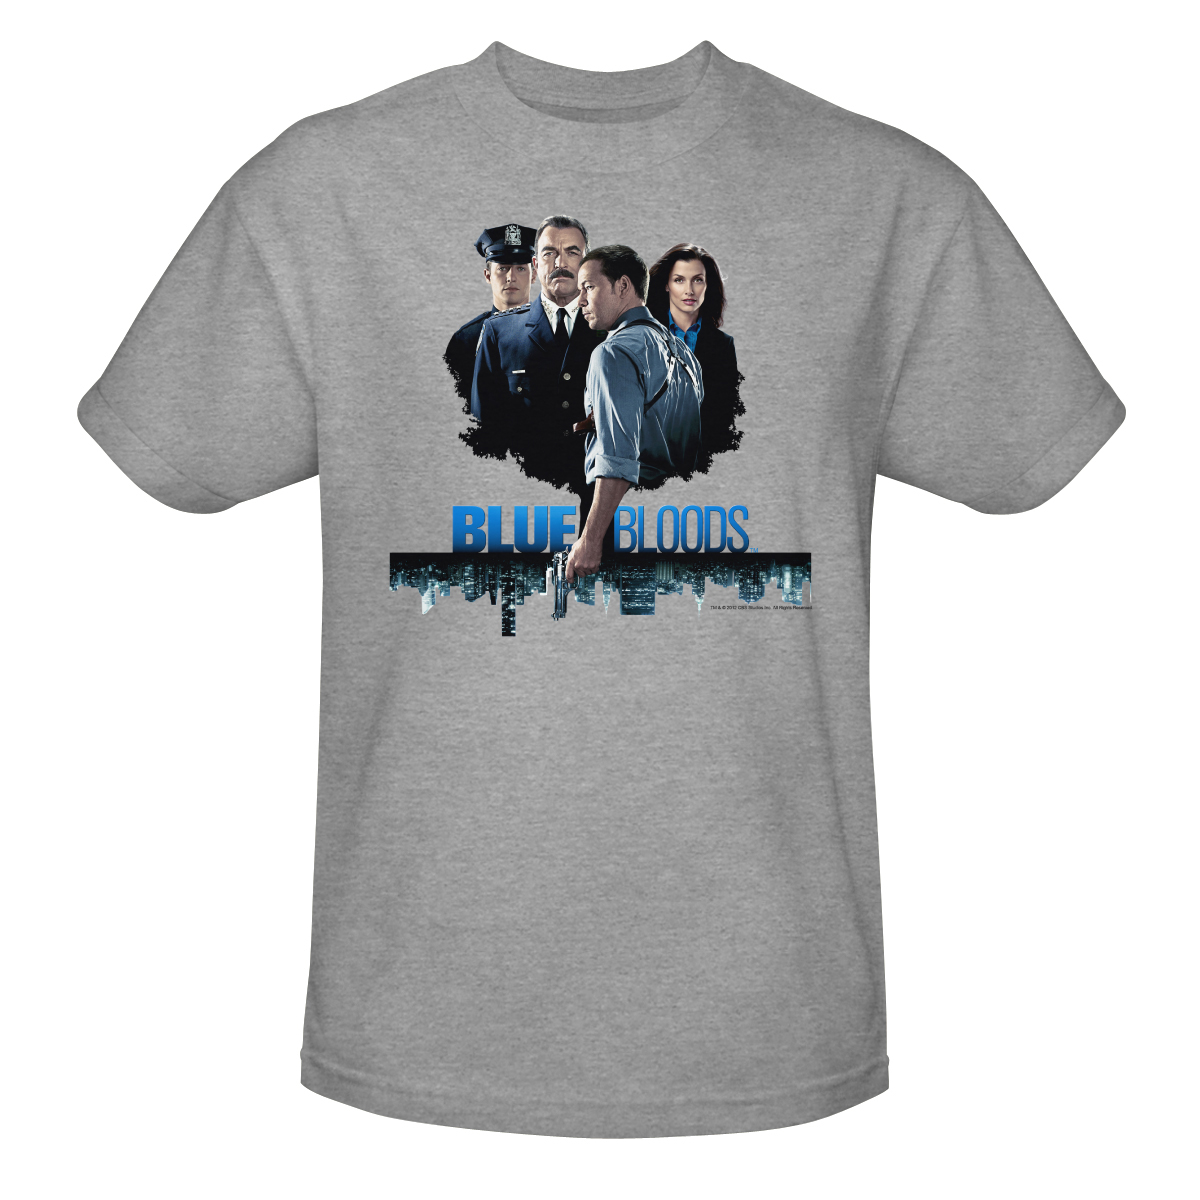 Blue Bloods Cast T-Shirt